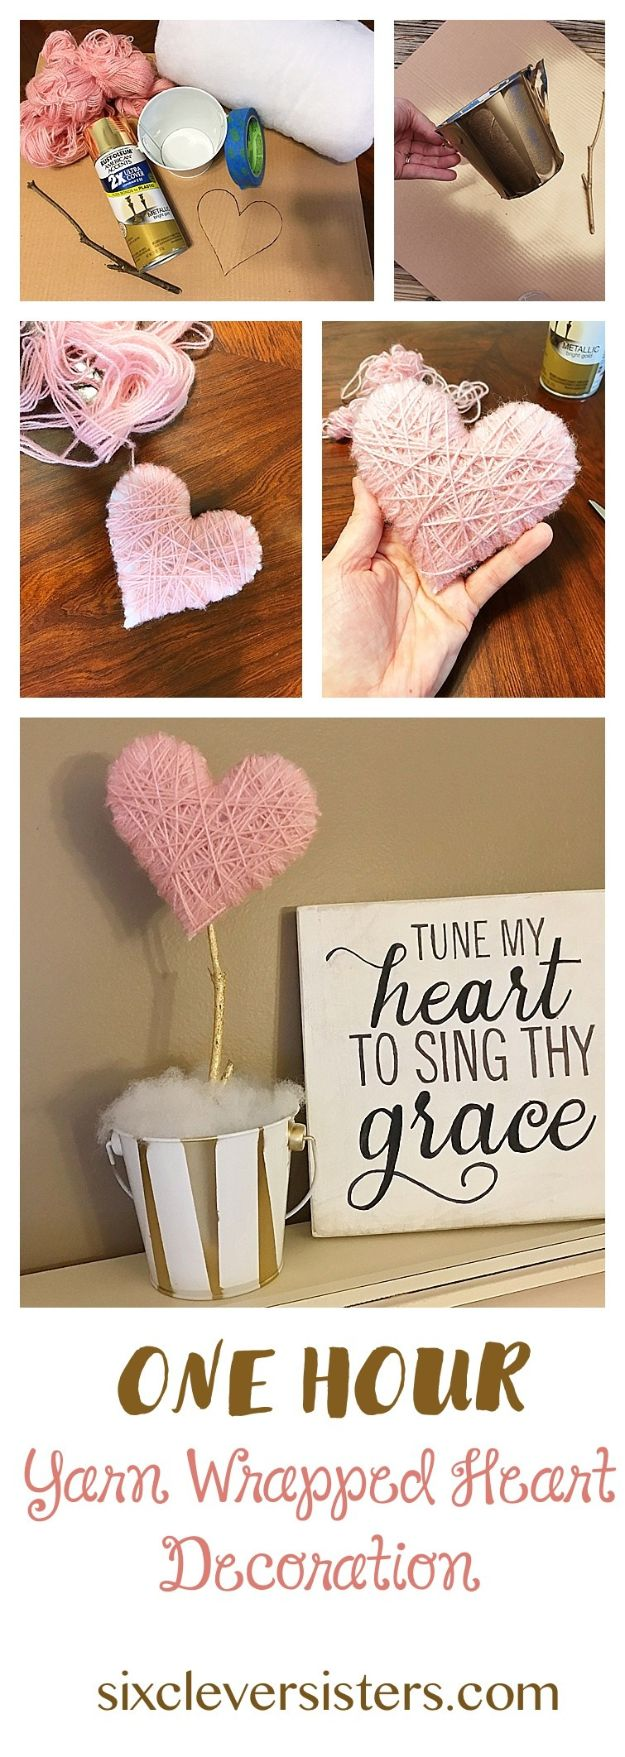 Crafts To Make and Sell - Yarn Wrapped Heart - 75 MORE Easy DIY Ideas for Cheap Things To Sell on Etsy, Online and for Craft Fairs. Make Money with These Homemade Crafts for Teens, Kids, Christmas, Summer, Mother's Day Gifts. http://diyjoy.com/crafts-to-make-and-sell-ideas